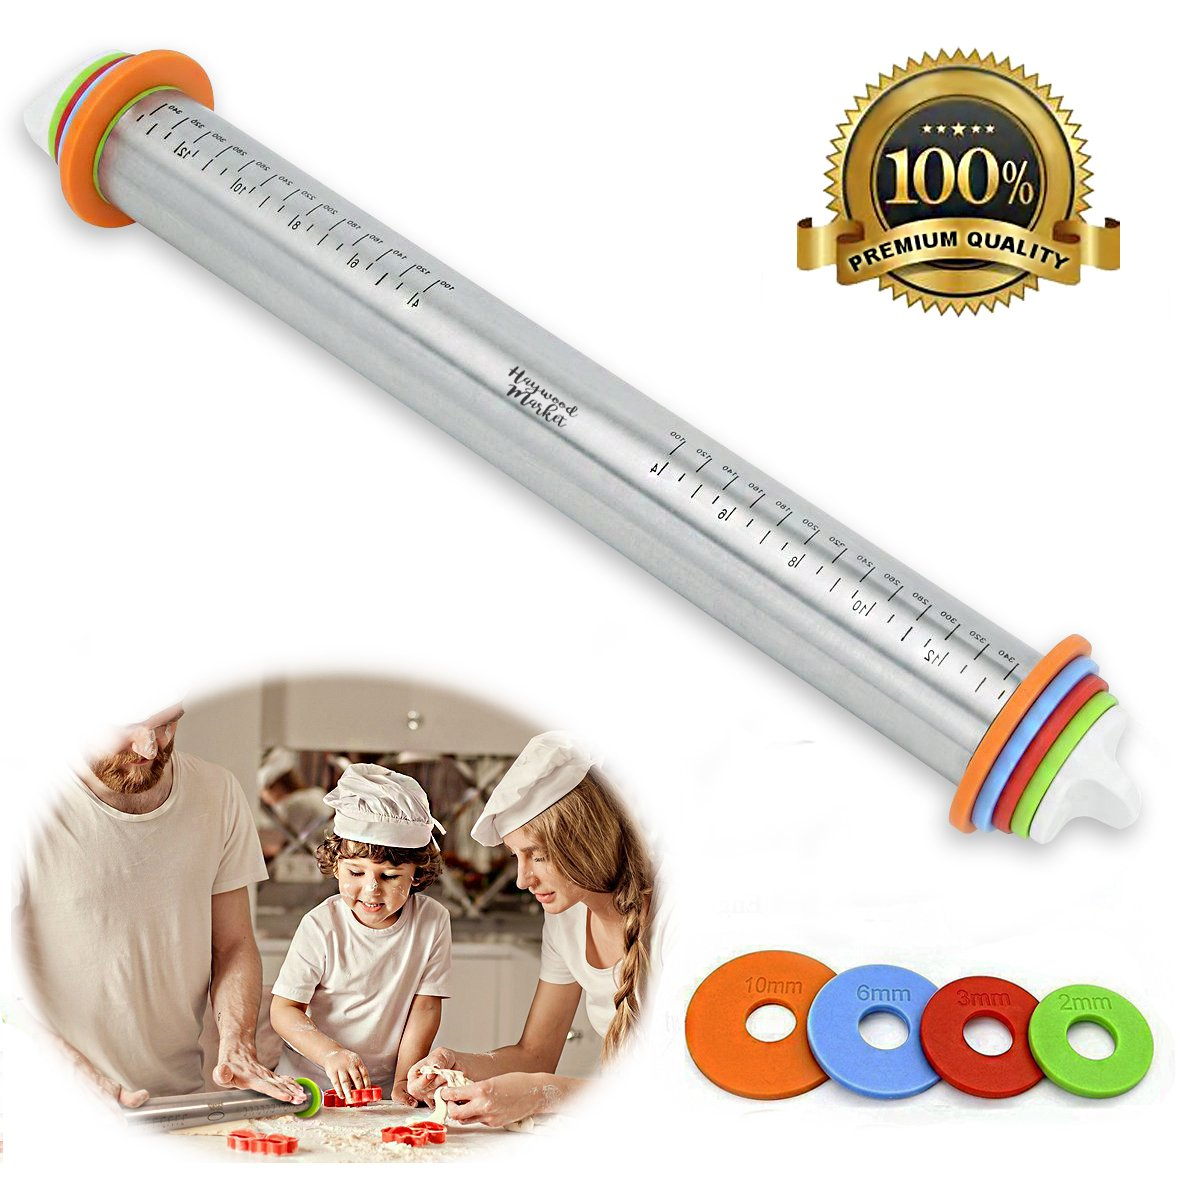 Adjustable Rolling Pin with Thickness Rings Guides - 17 inch Large Heavy Duty Stainless Steel French Style Dough Roller for Baking Pizza Pie Pastries and Cookies Haywood Market